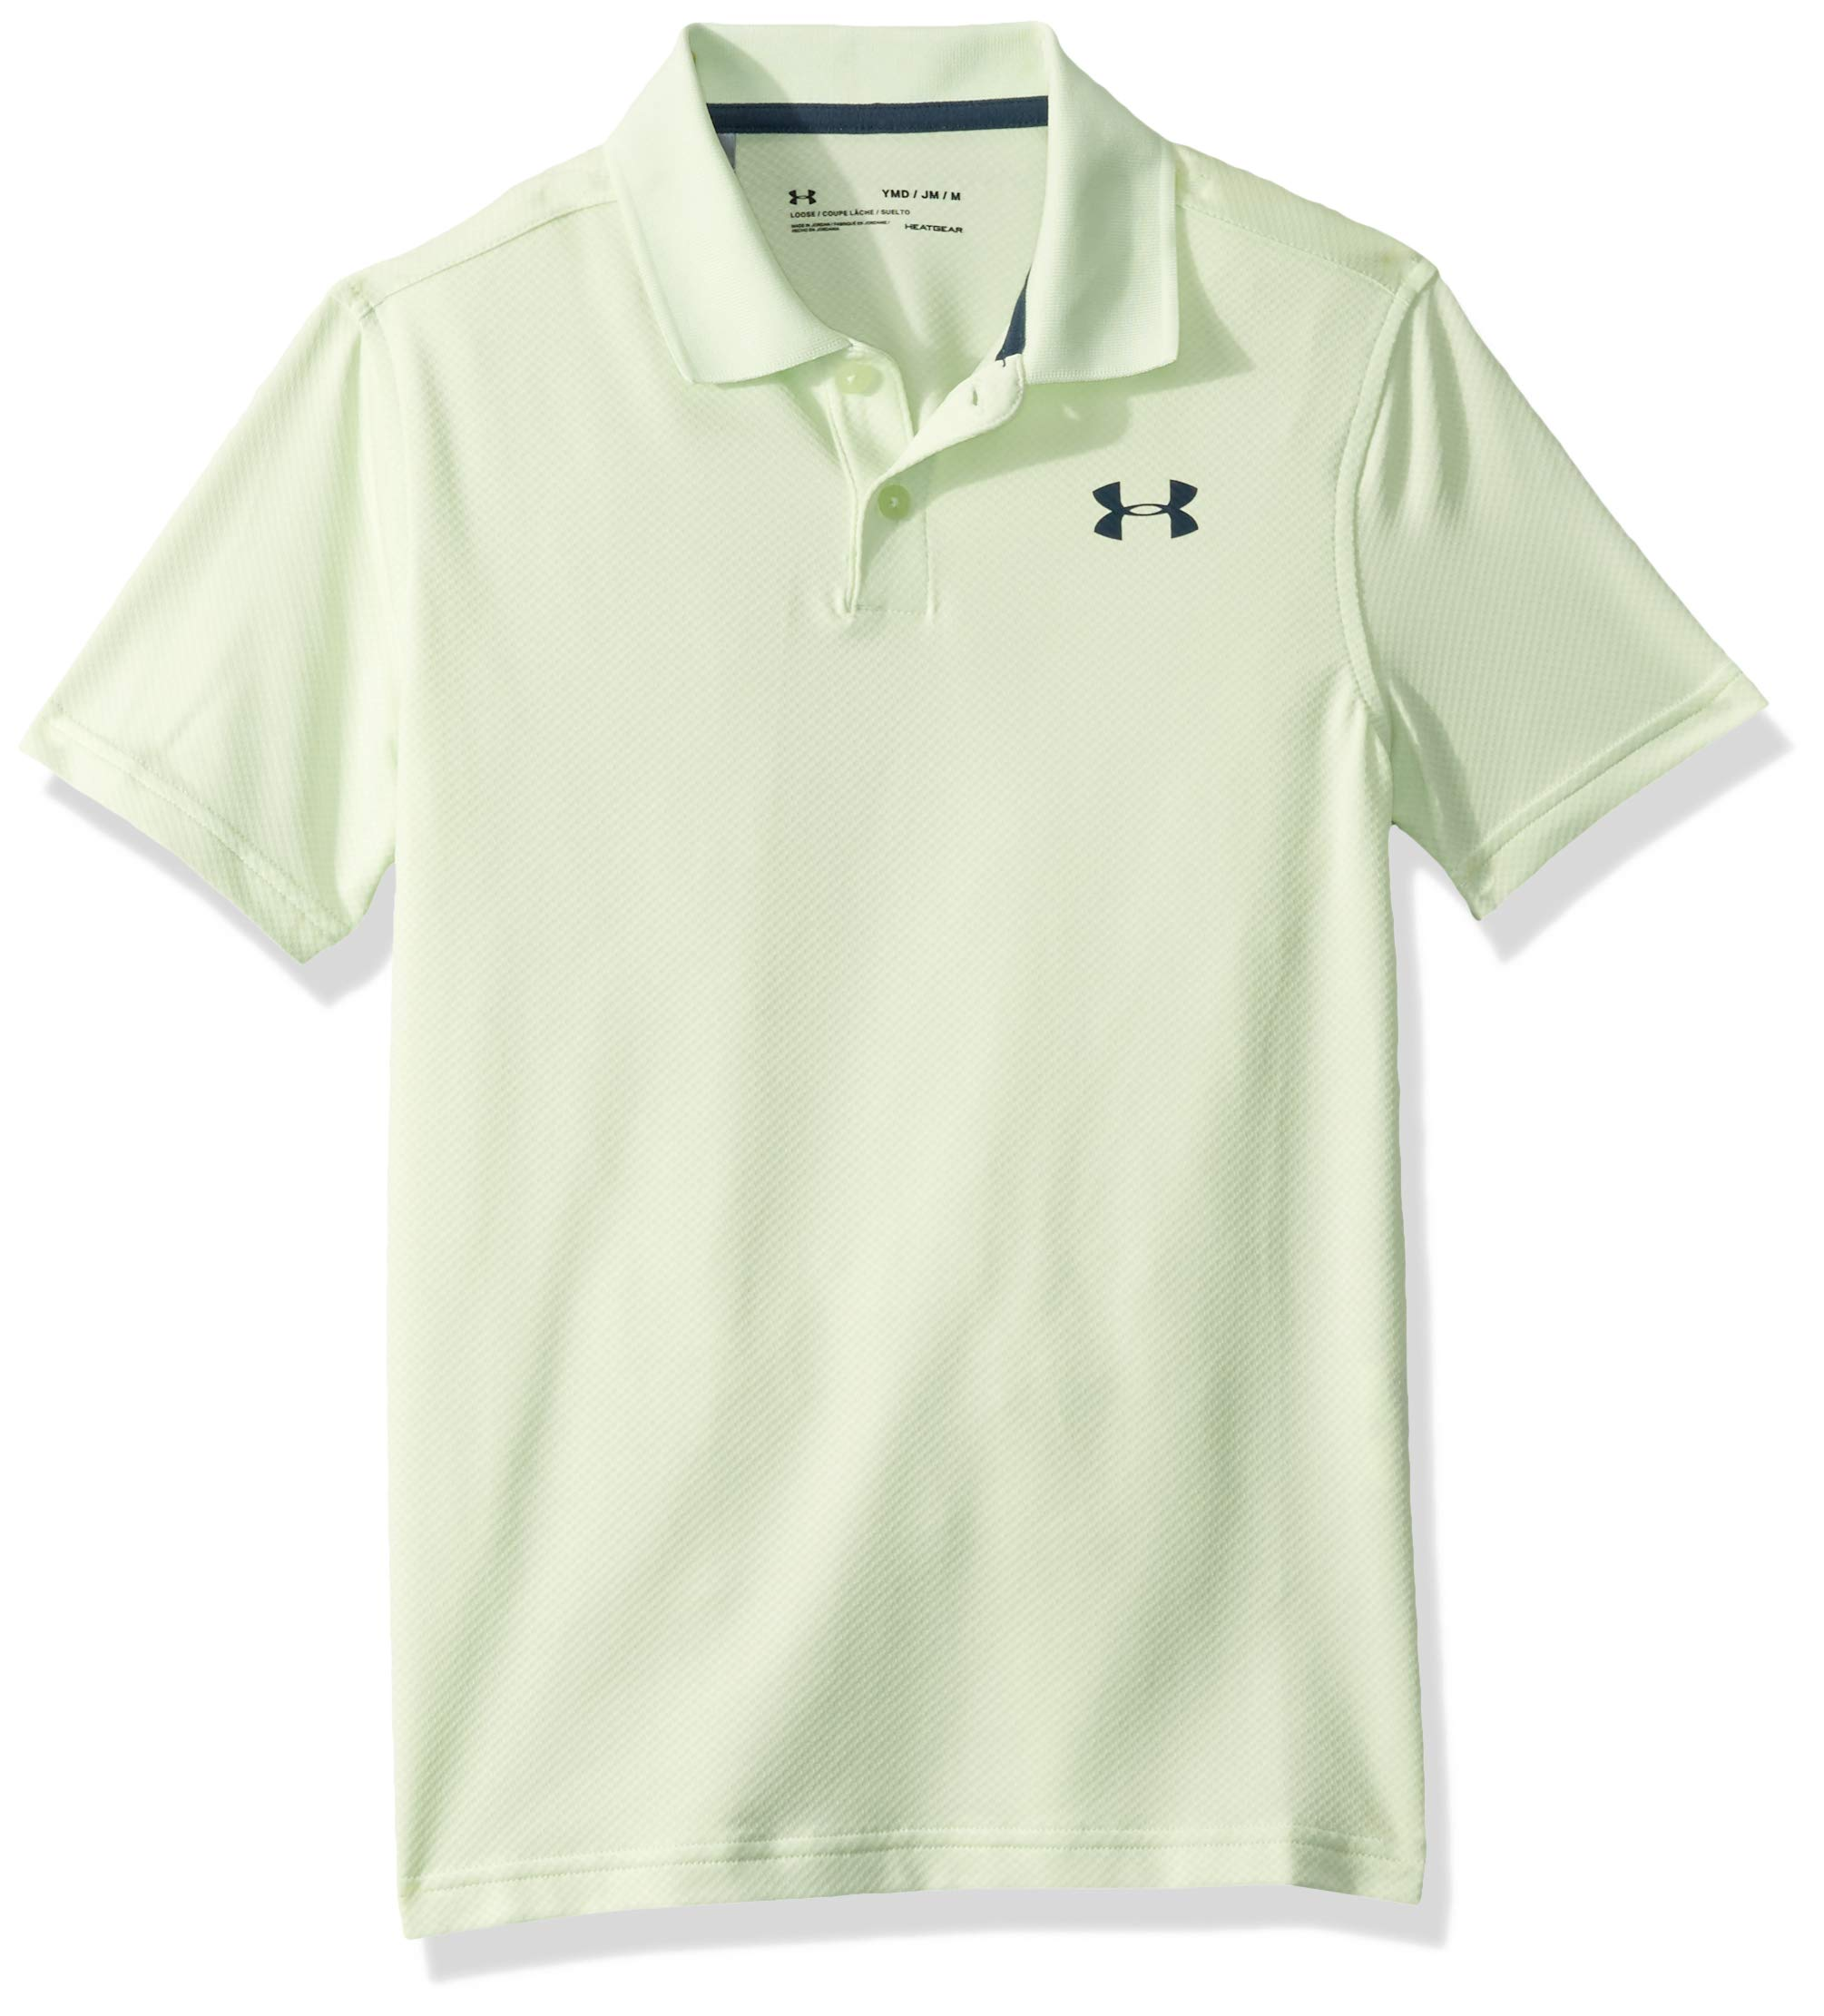 Under Armour boys Performance 2.0 Golf Polo, Phosphor Green (369)/Wire, Youth X-Small